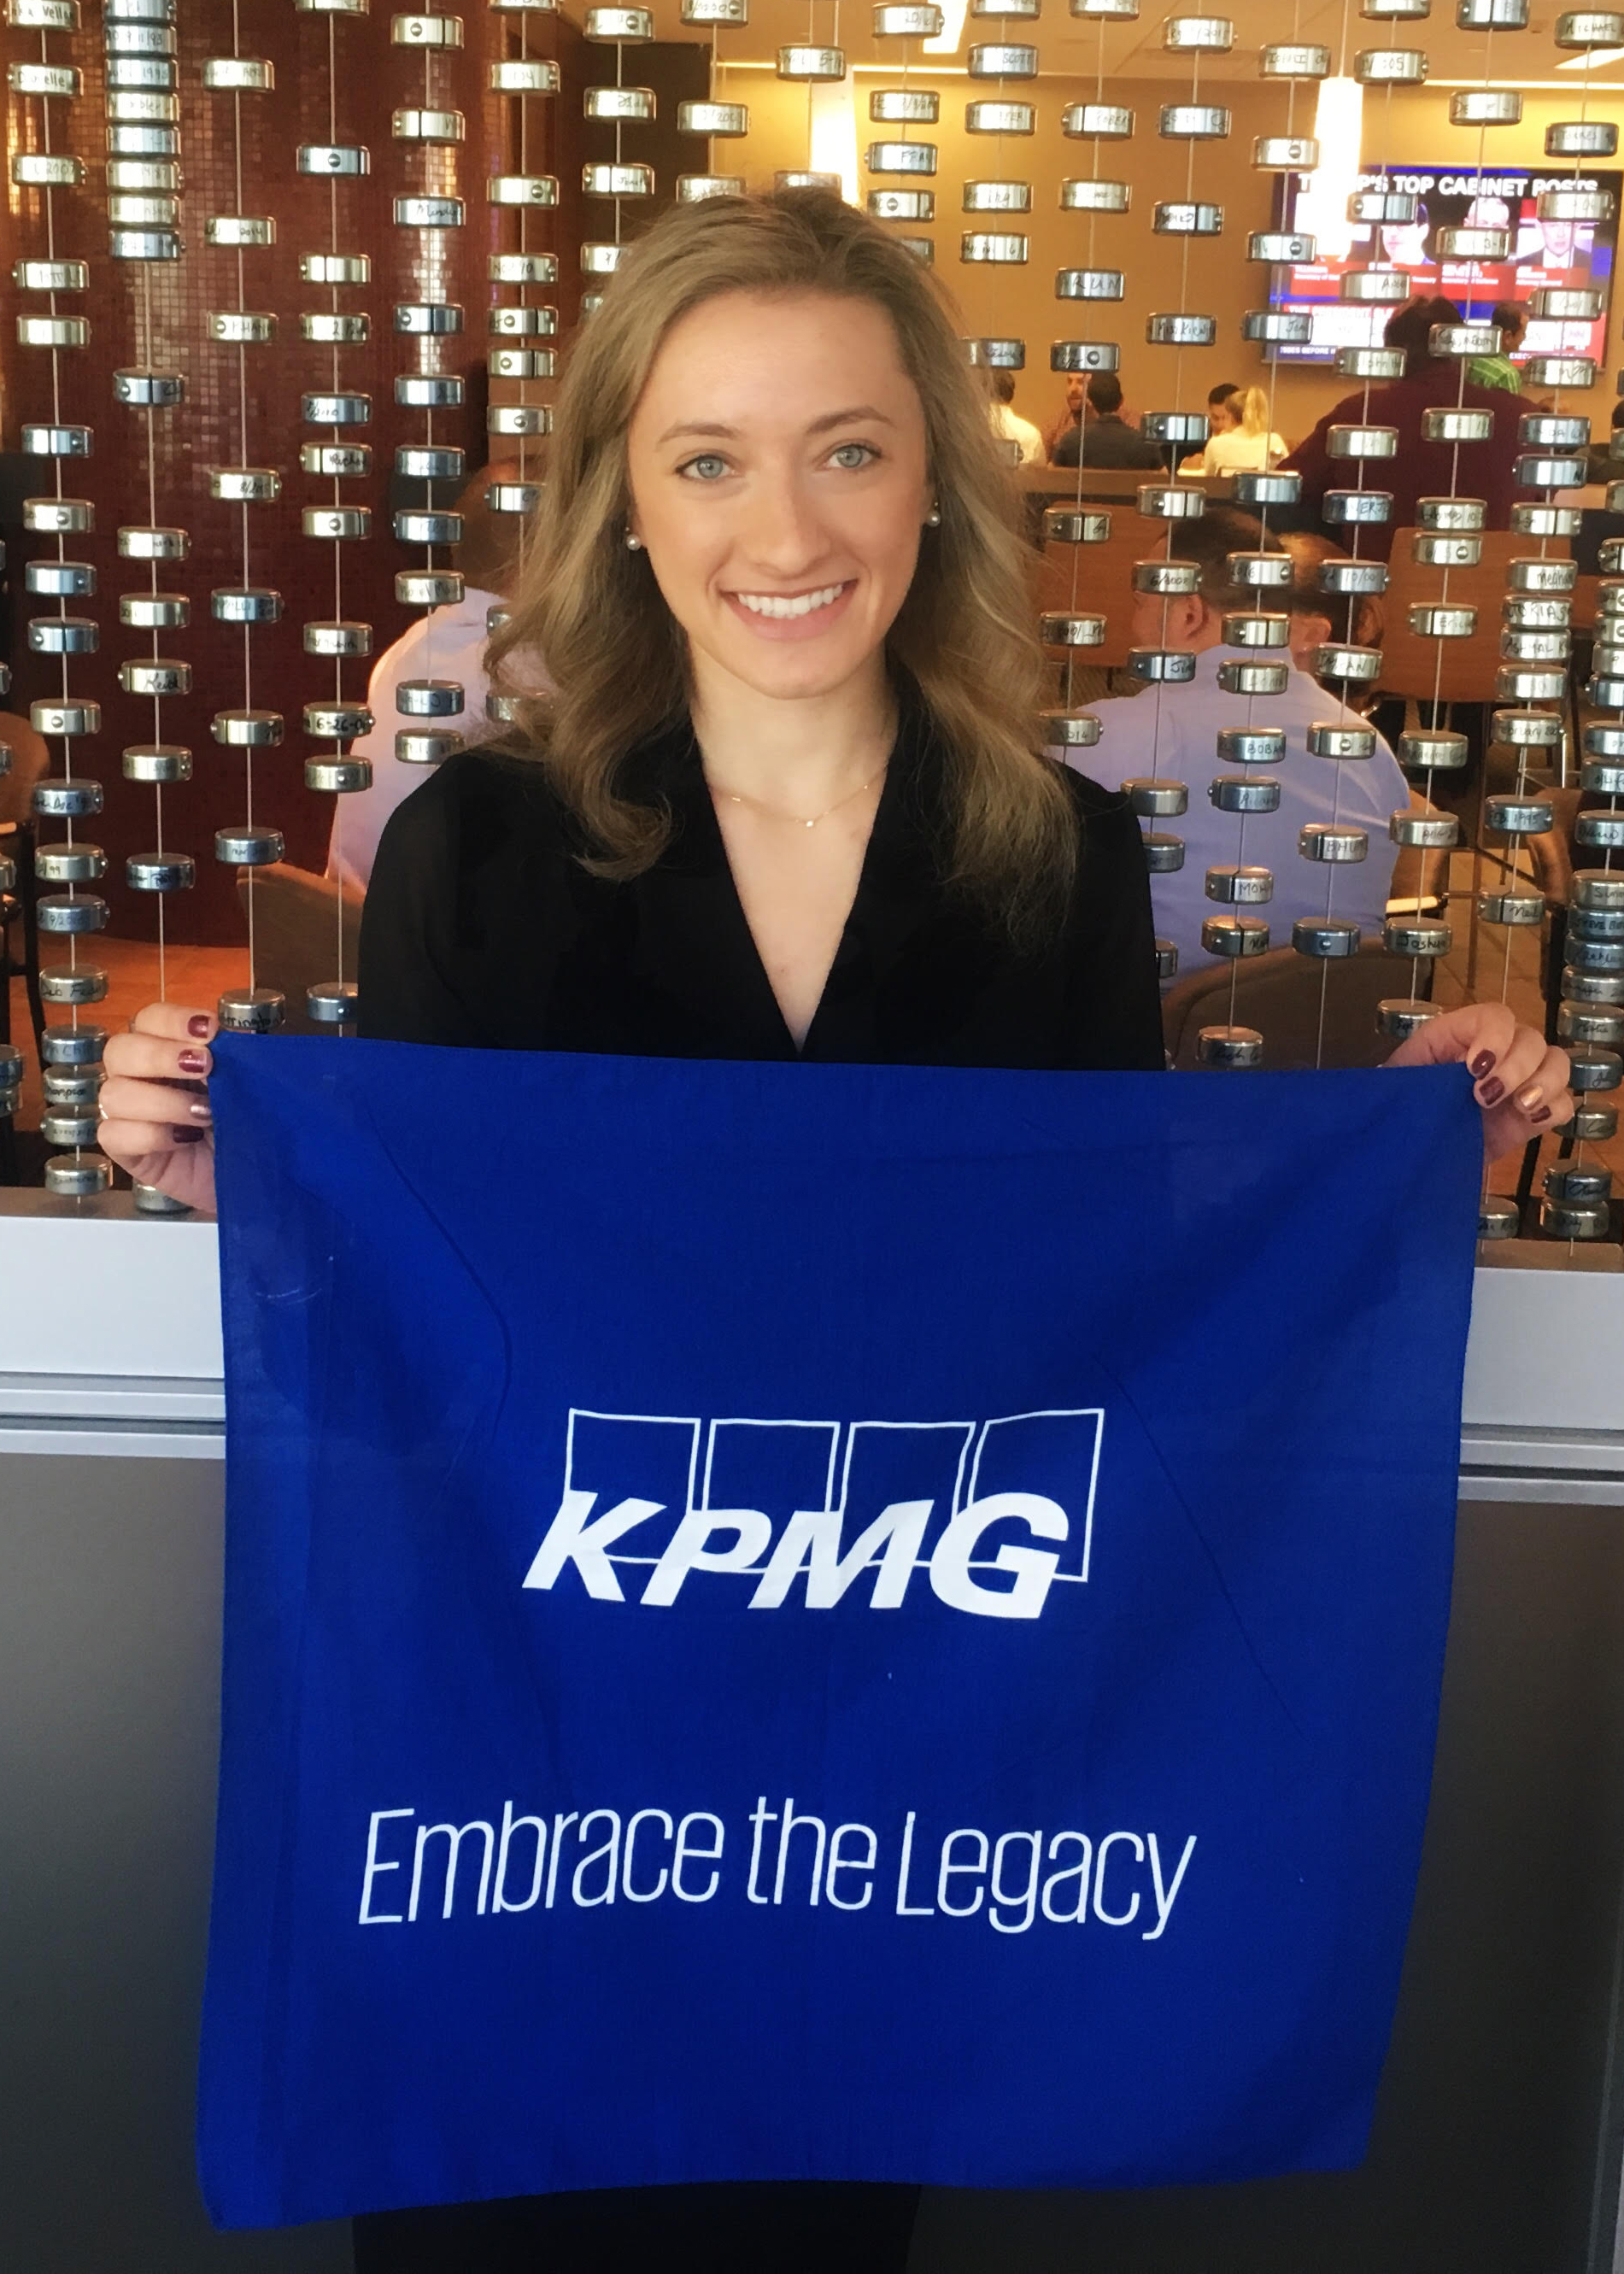 Jeanine Grillo holding a KPMG flag